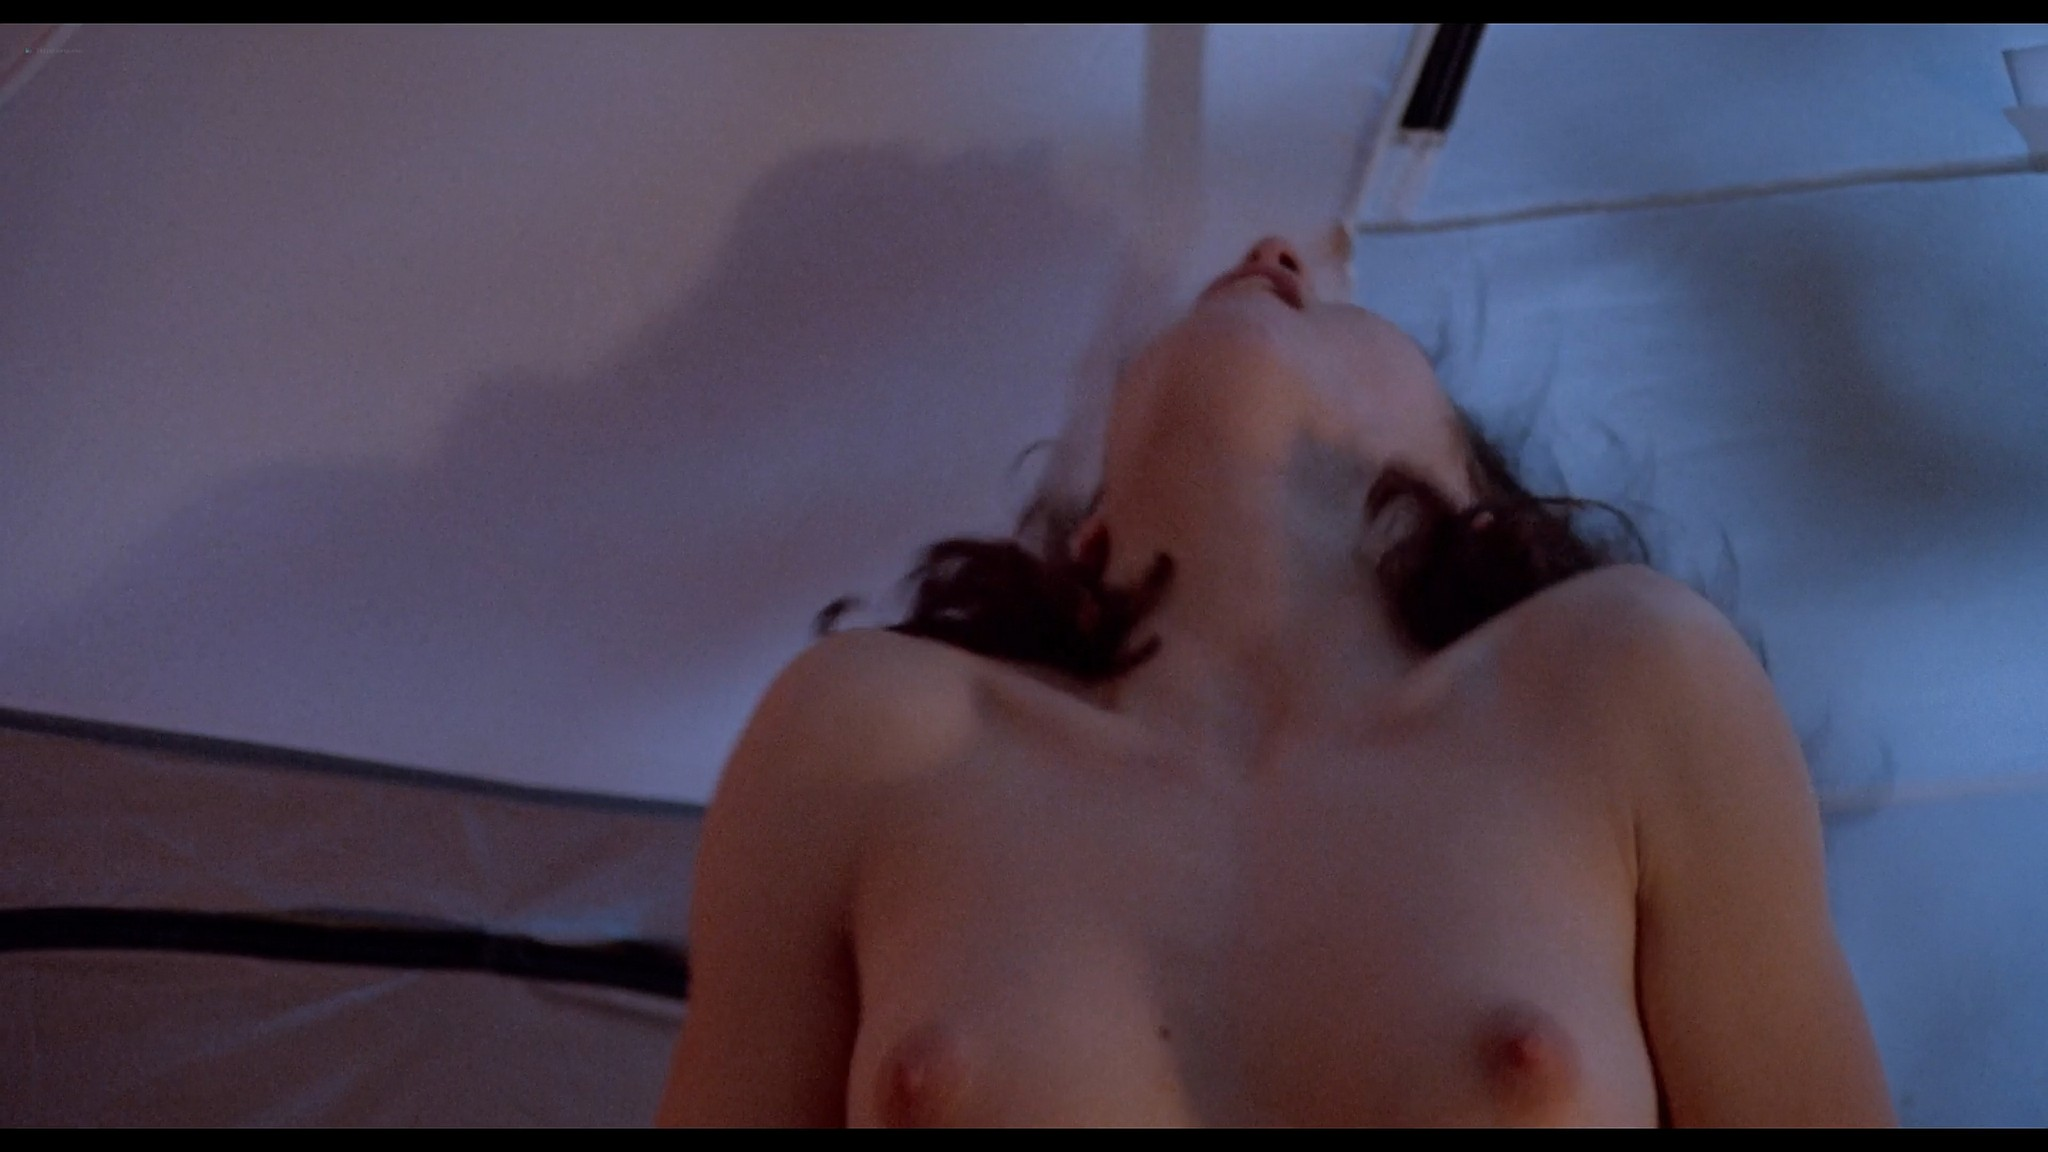 Julie Michaels nude butt and boobs Kathryn Atwood and others nude and sexy Jason Goes to Hell 1993 1080p BluRay 12